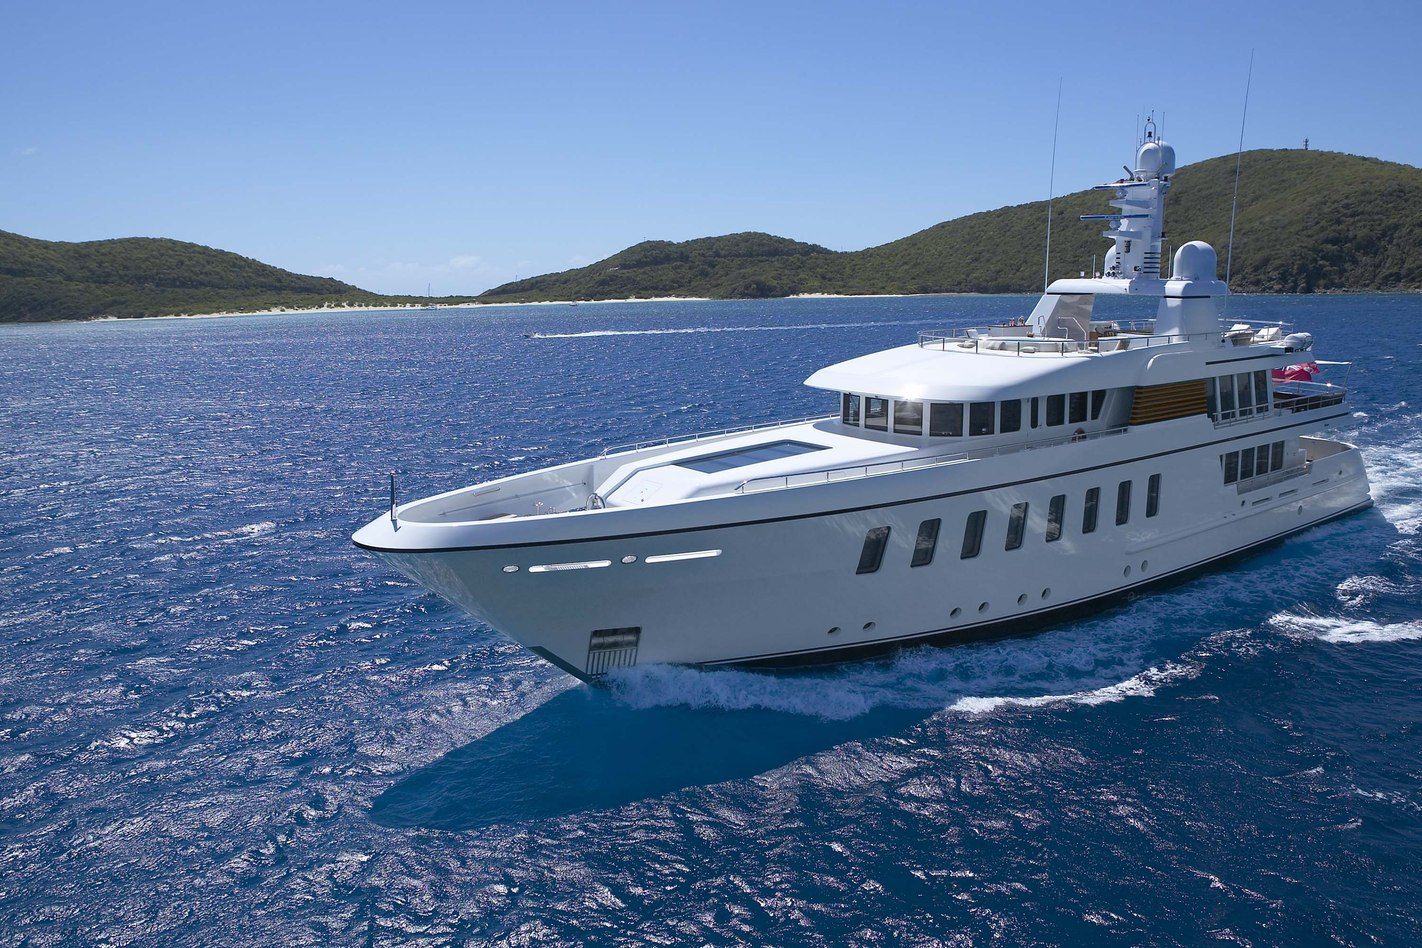 superyacht GLADIATOR cruising on a luxury yacht charter